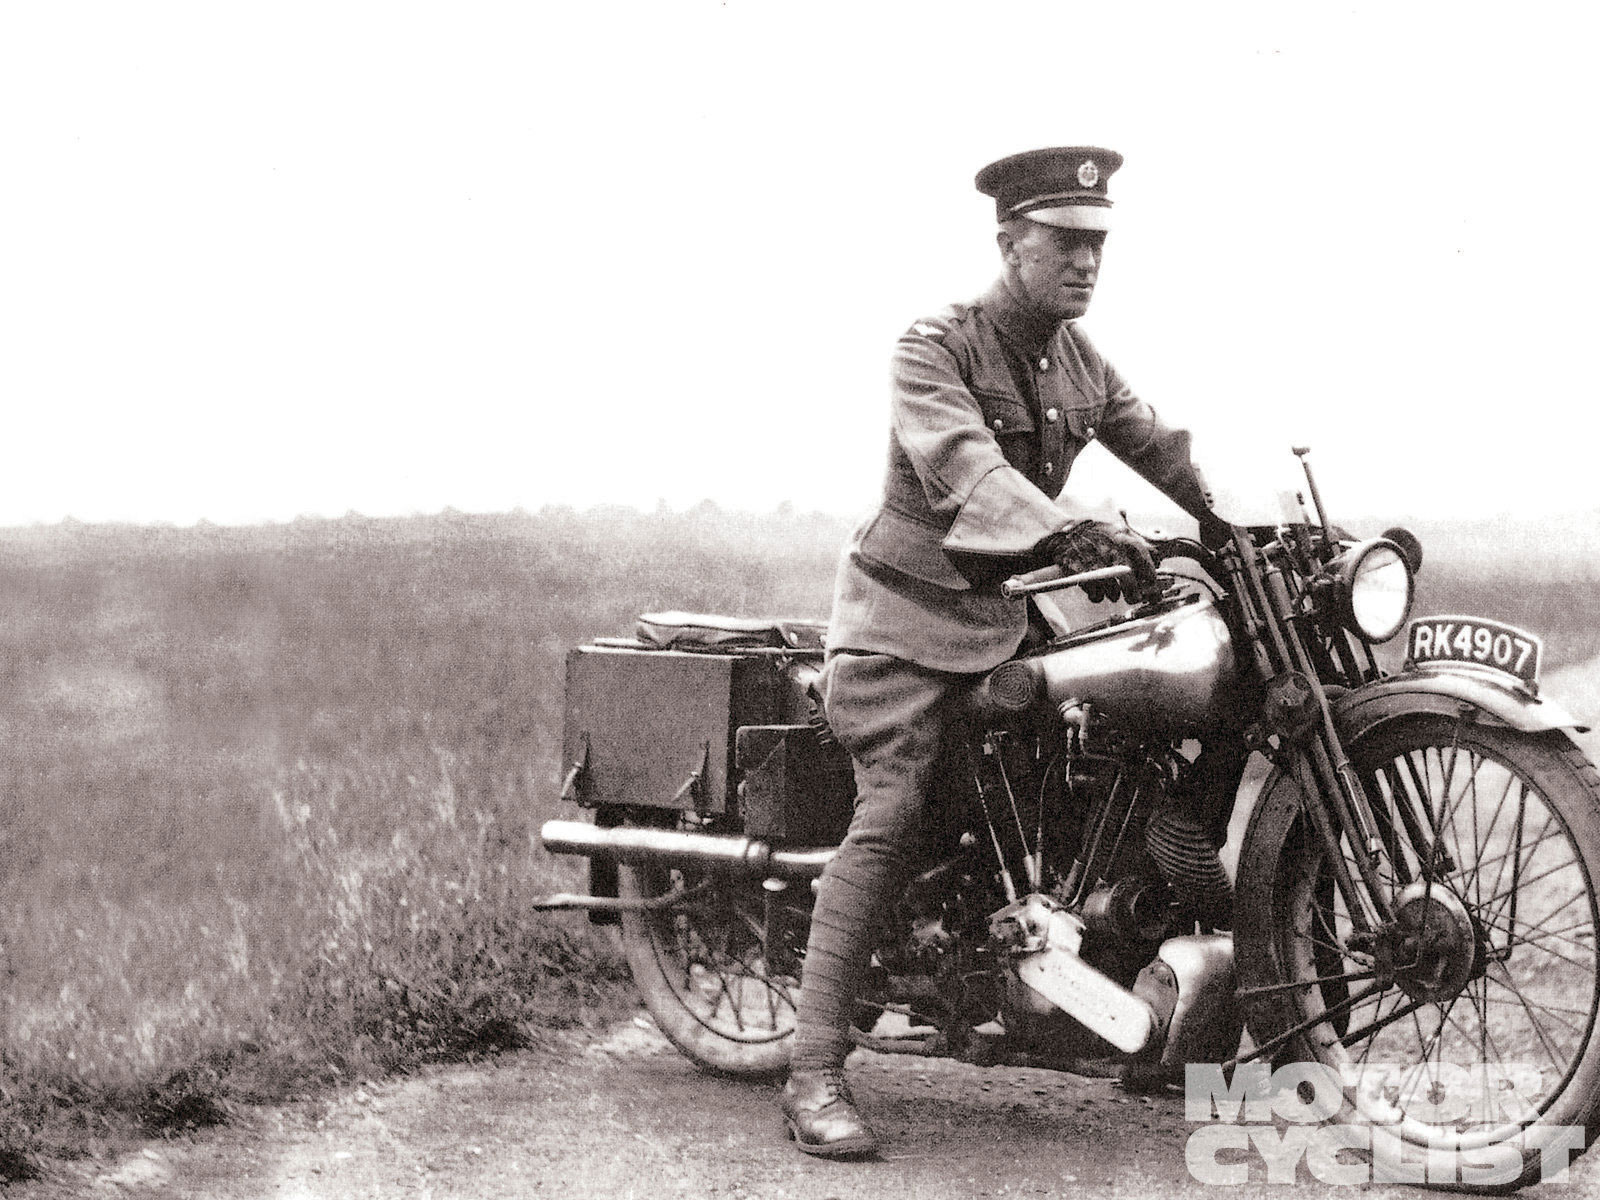 122-1203-01-z+lawrence-of-arabia-warrior-diplomat-statesman-motorcyclist+